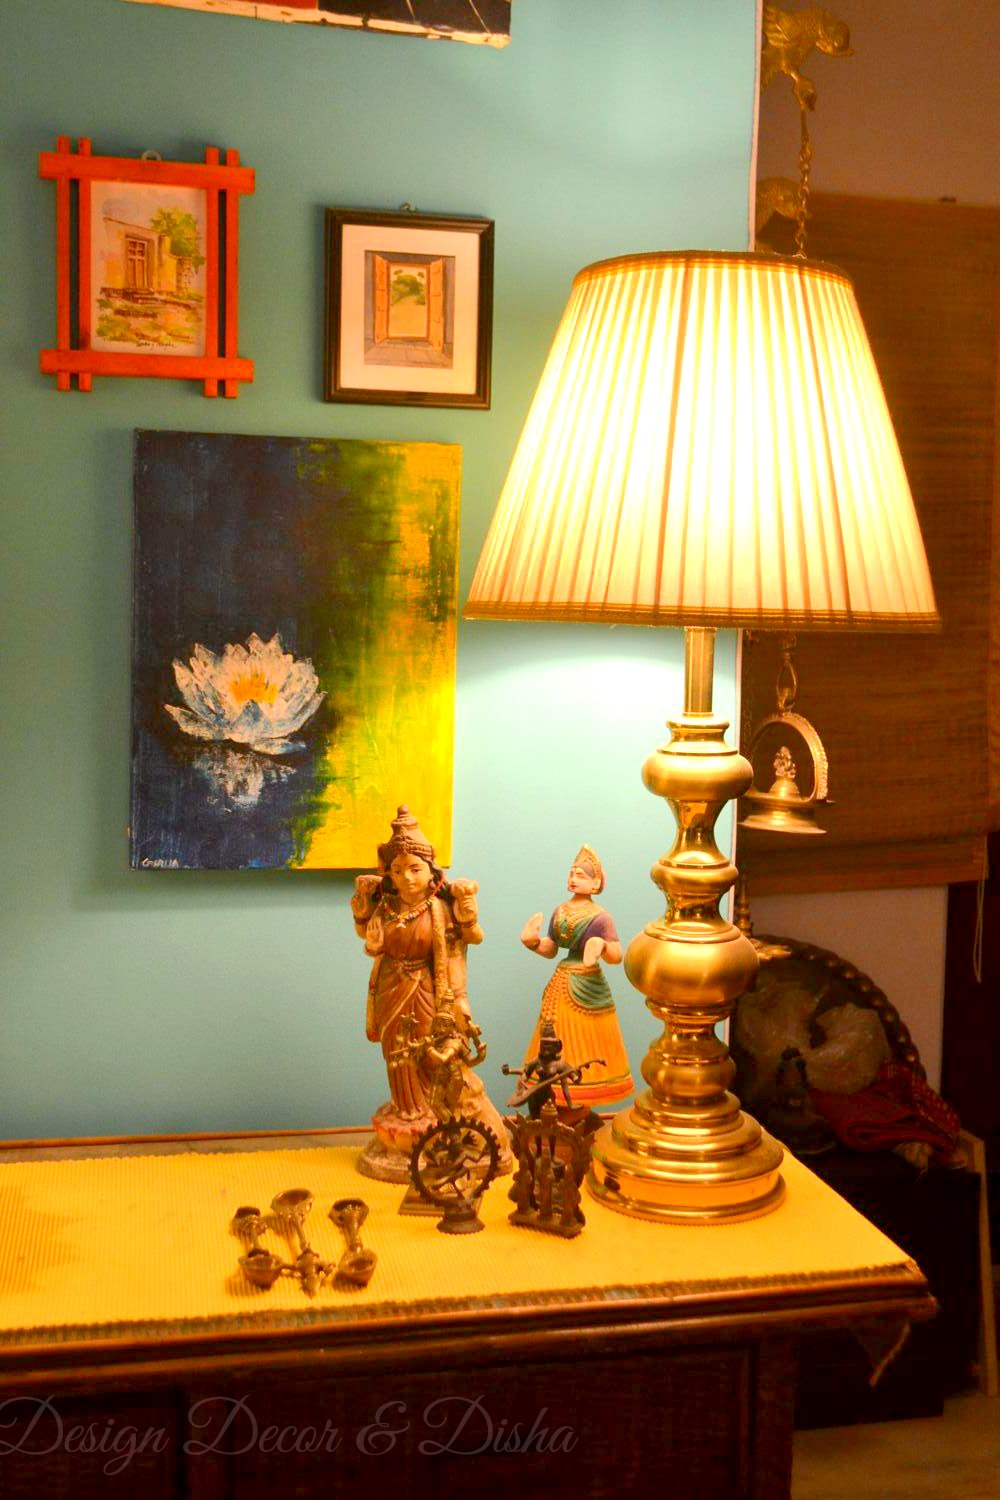 Design Decor Disha An Indian Design Decor Blog Home Tour Preethi Prabhu